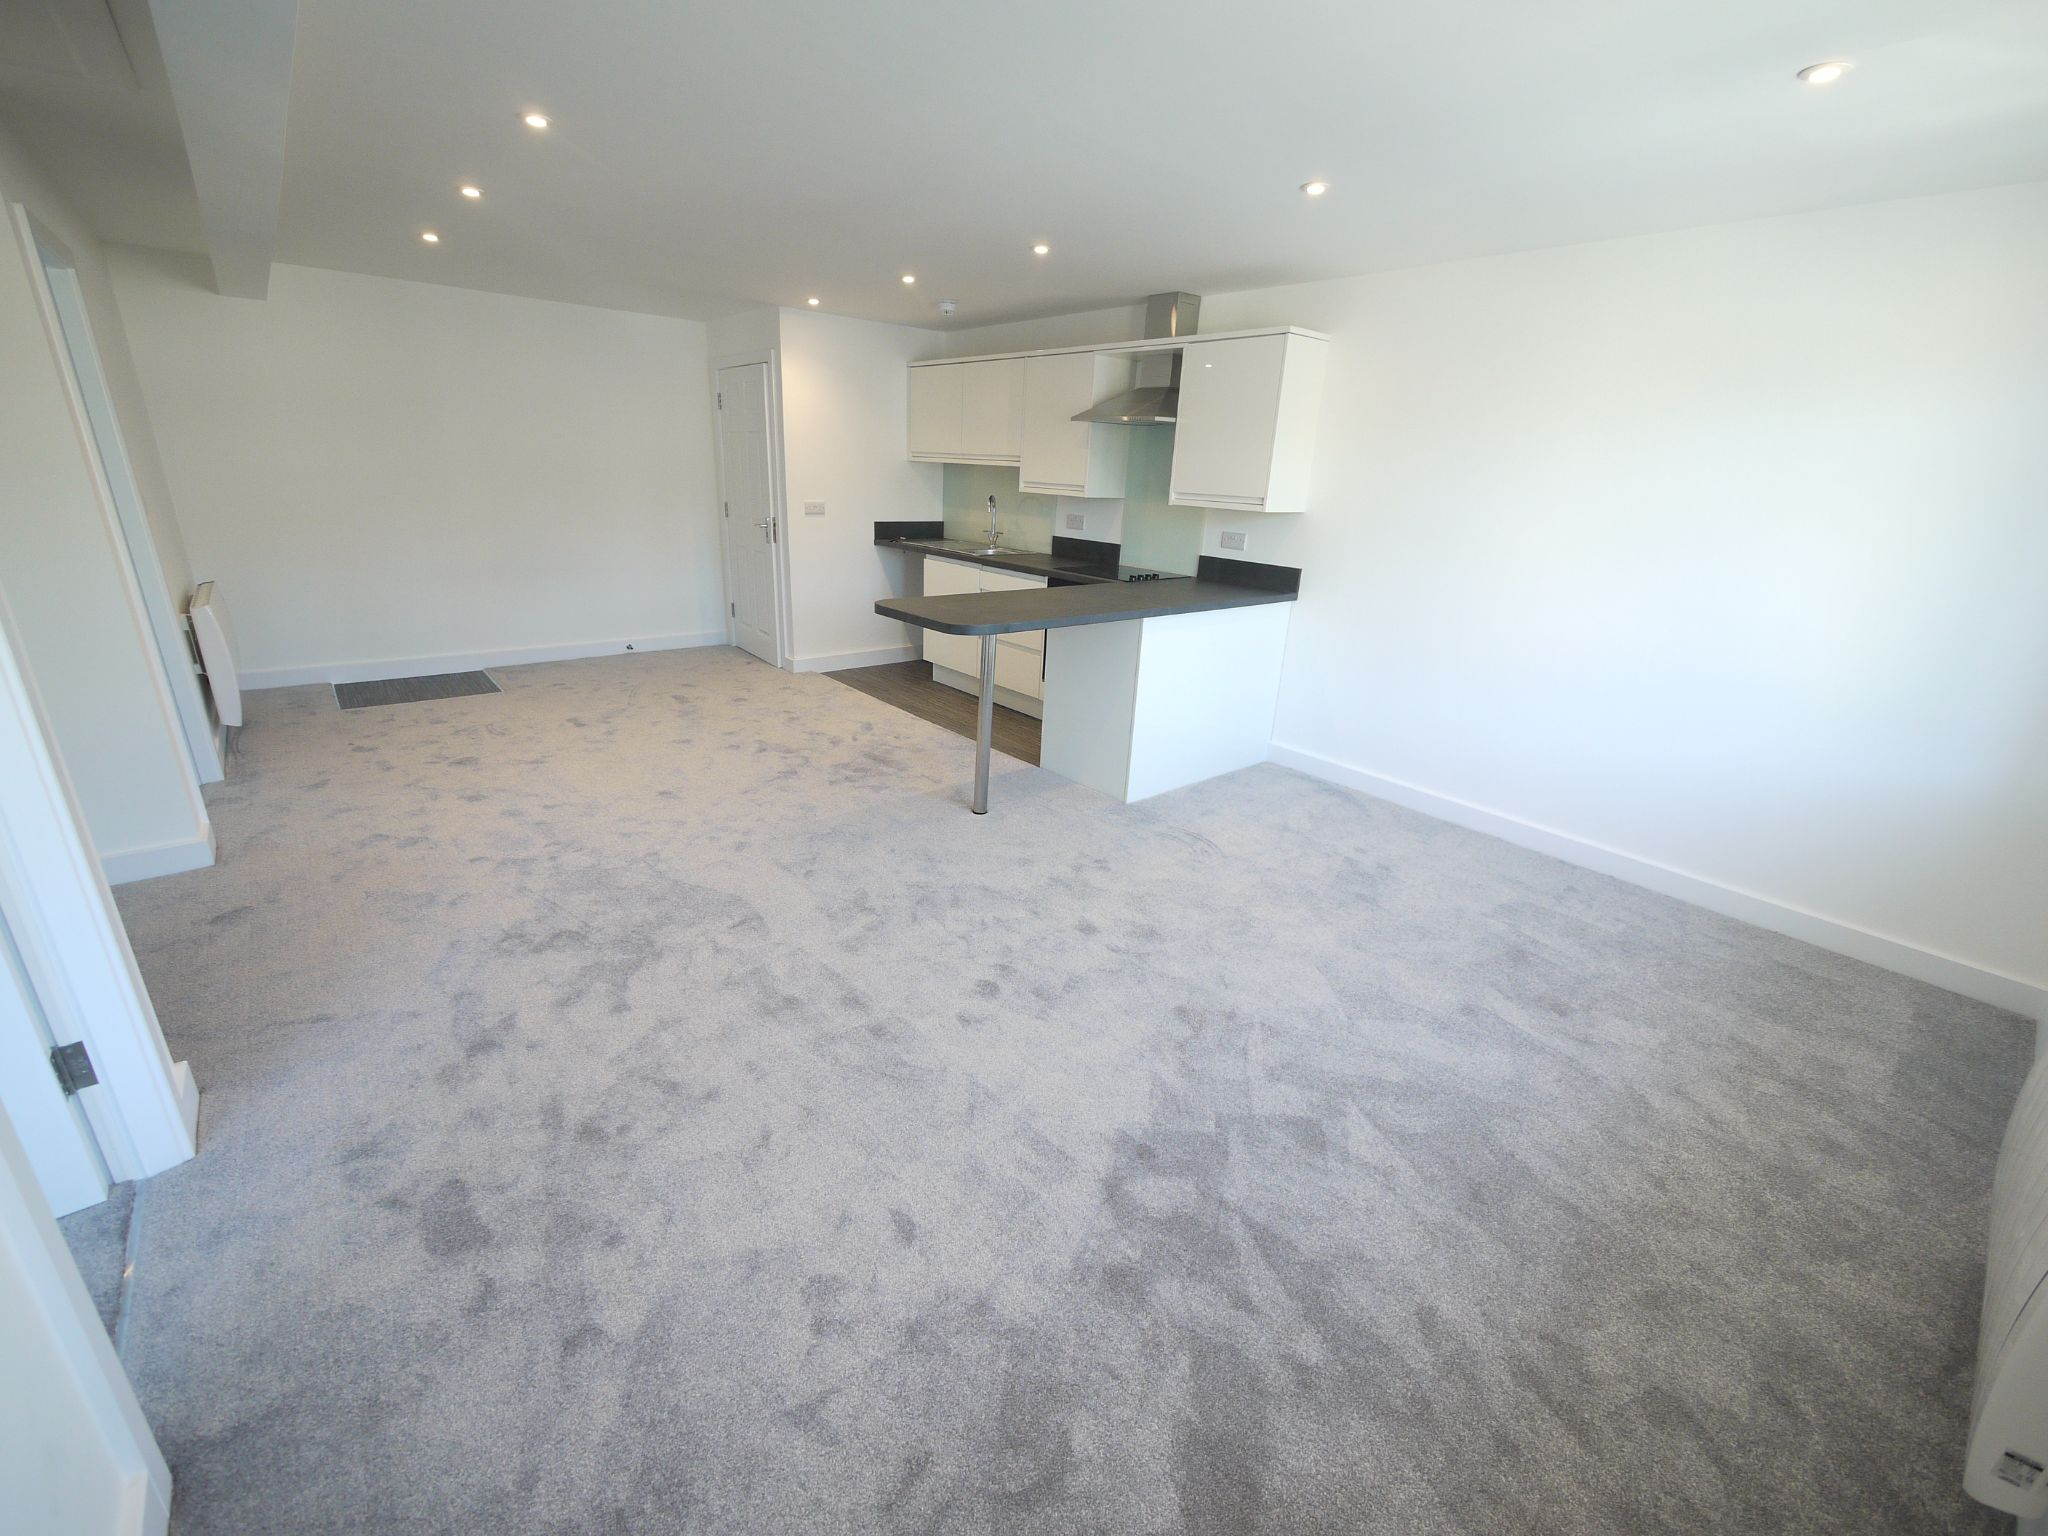 2 bedroom apartment flat/apartment To Let in Halifax - Photograph 3.